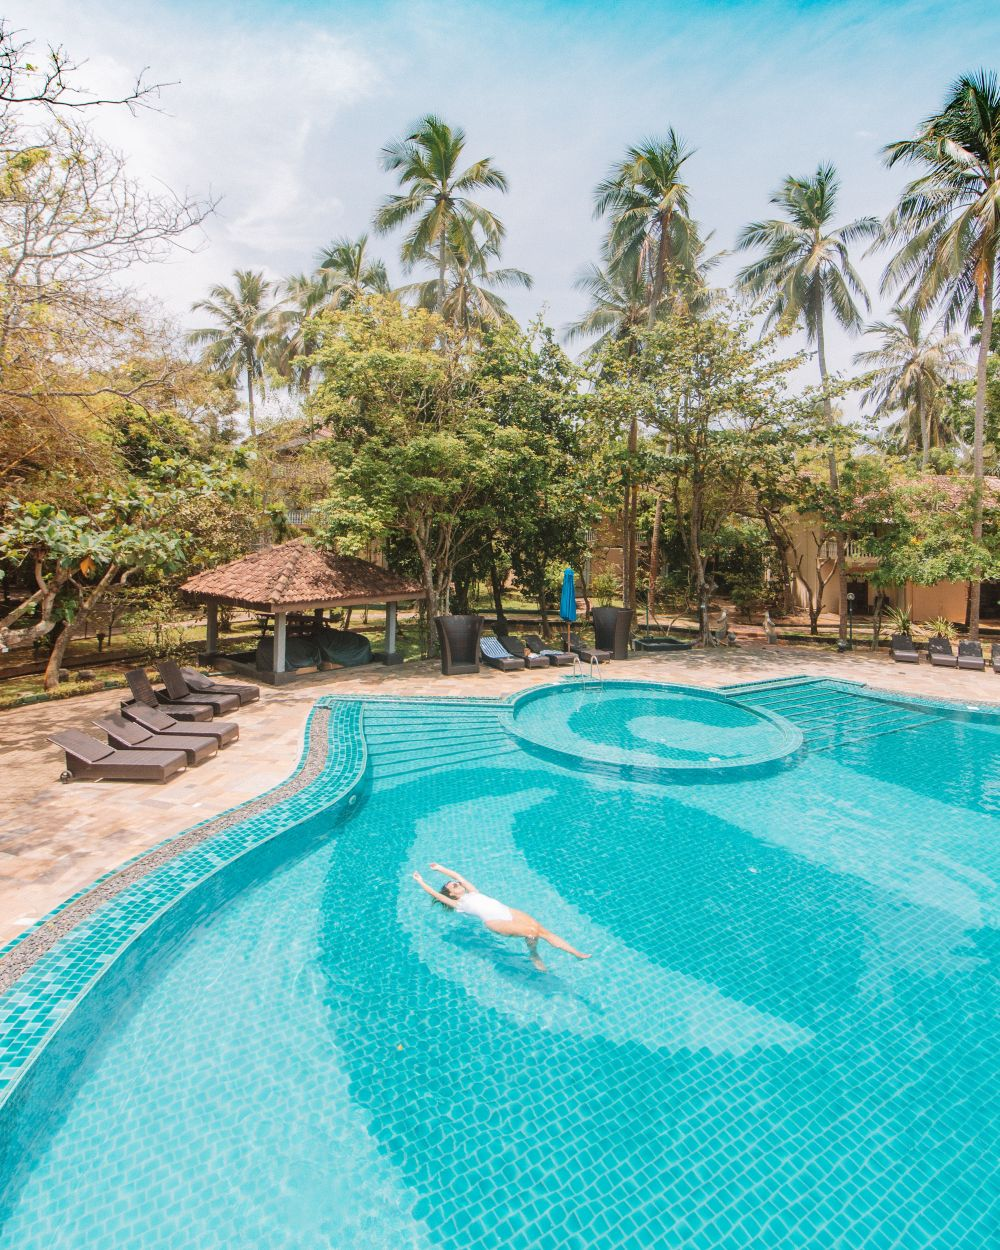 What to expect from an Ayurveda retreat in Sri Lanka